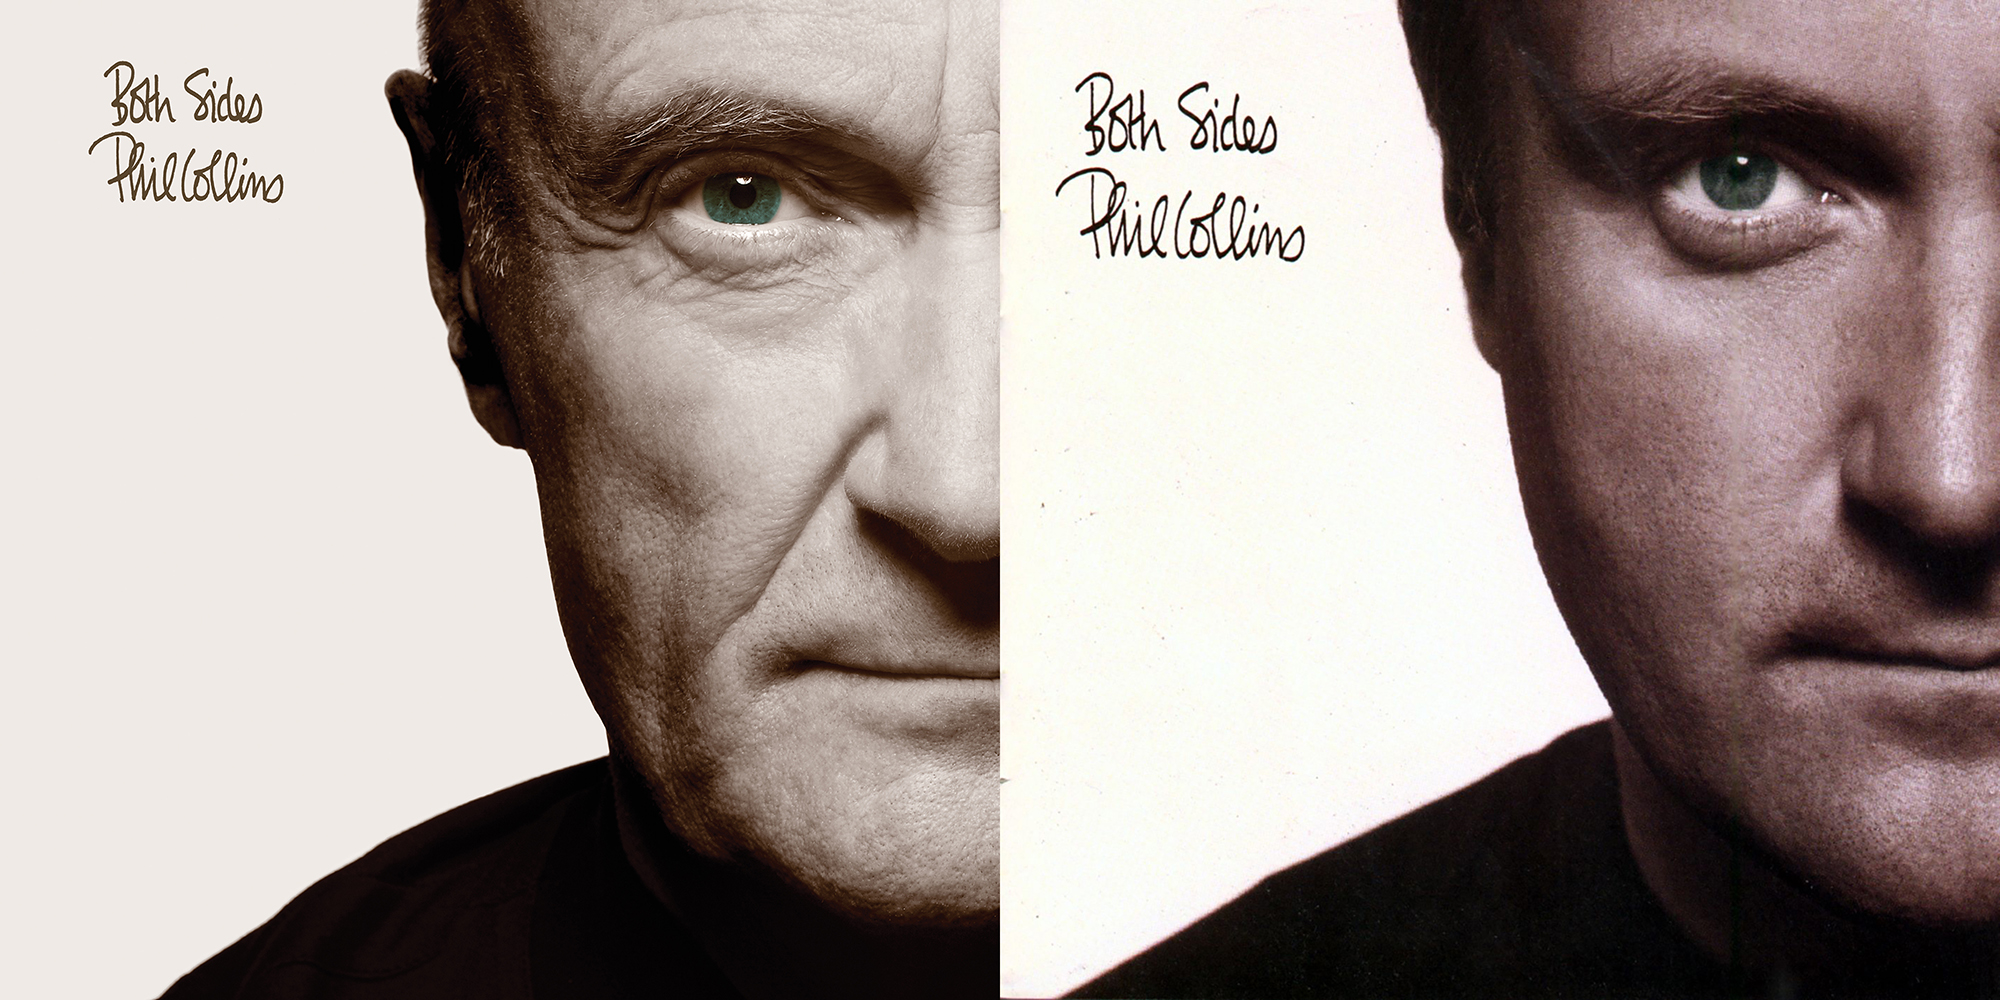 Phil Collins Both Sides merger